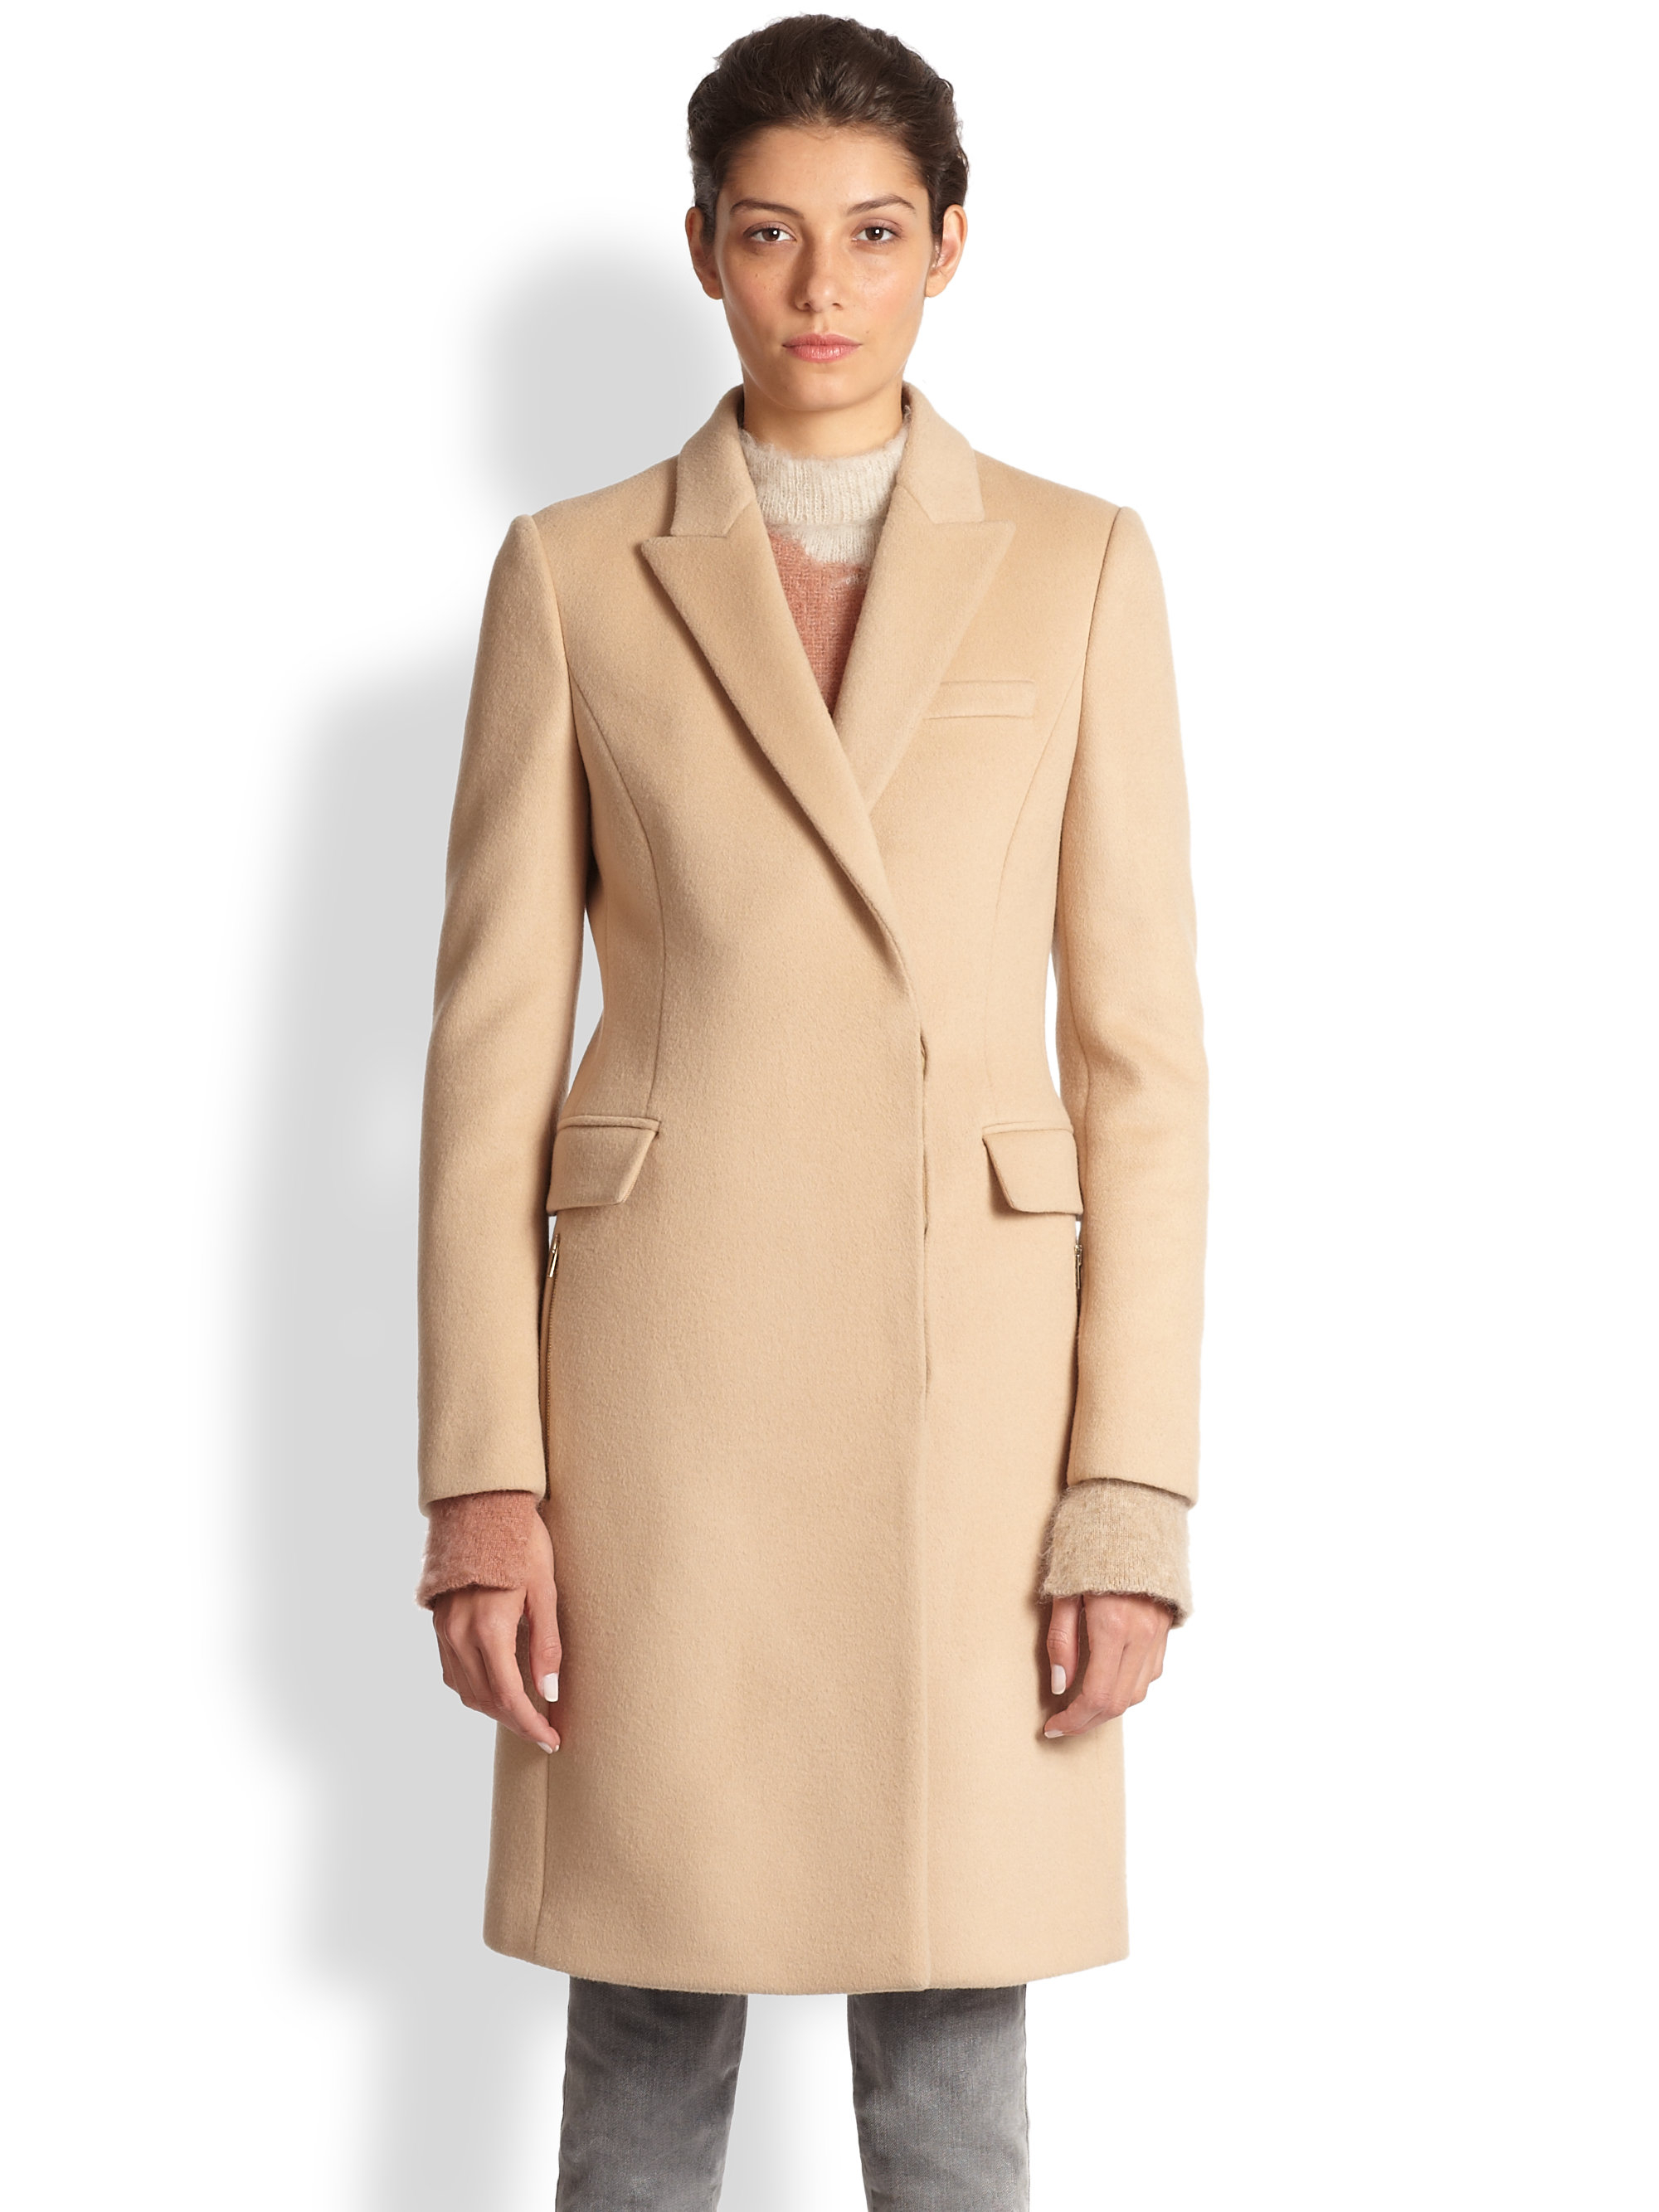 Stella Mccartney Florence Camel Coat In Brown Lyst